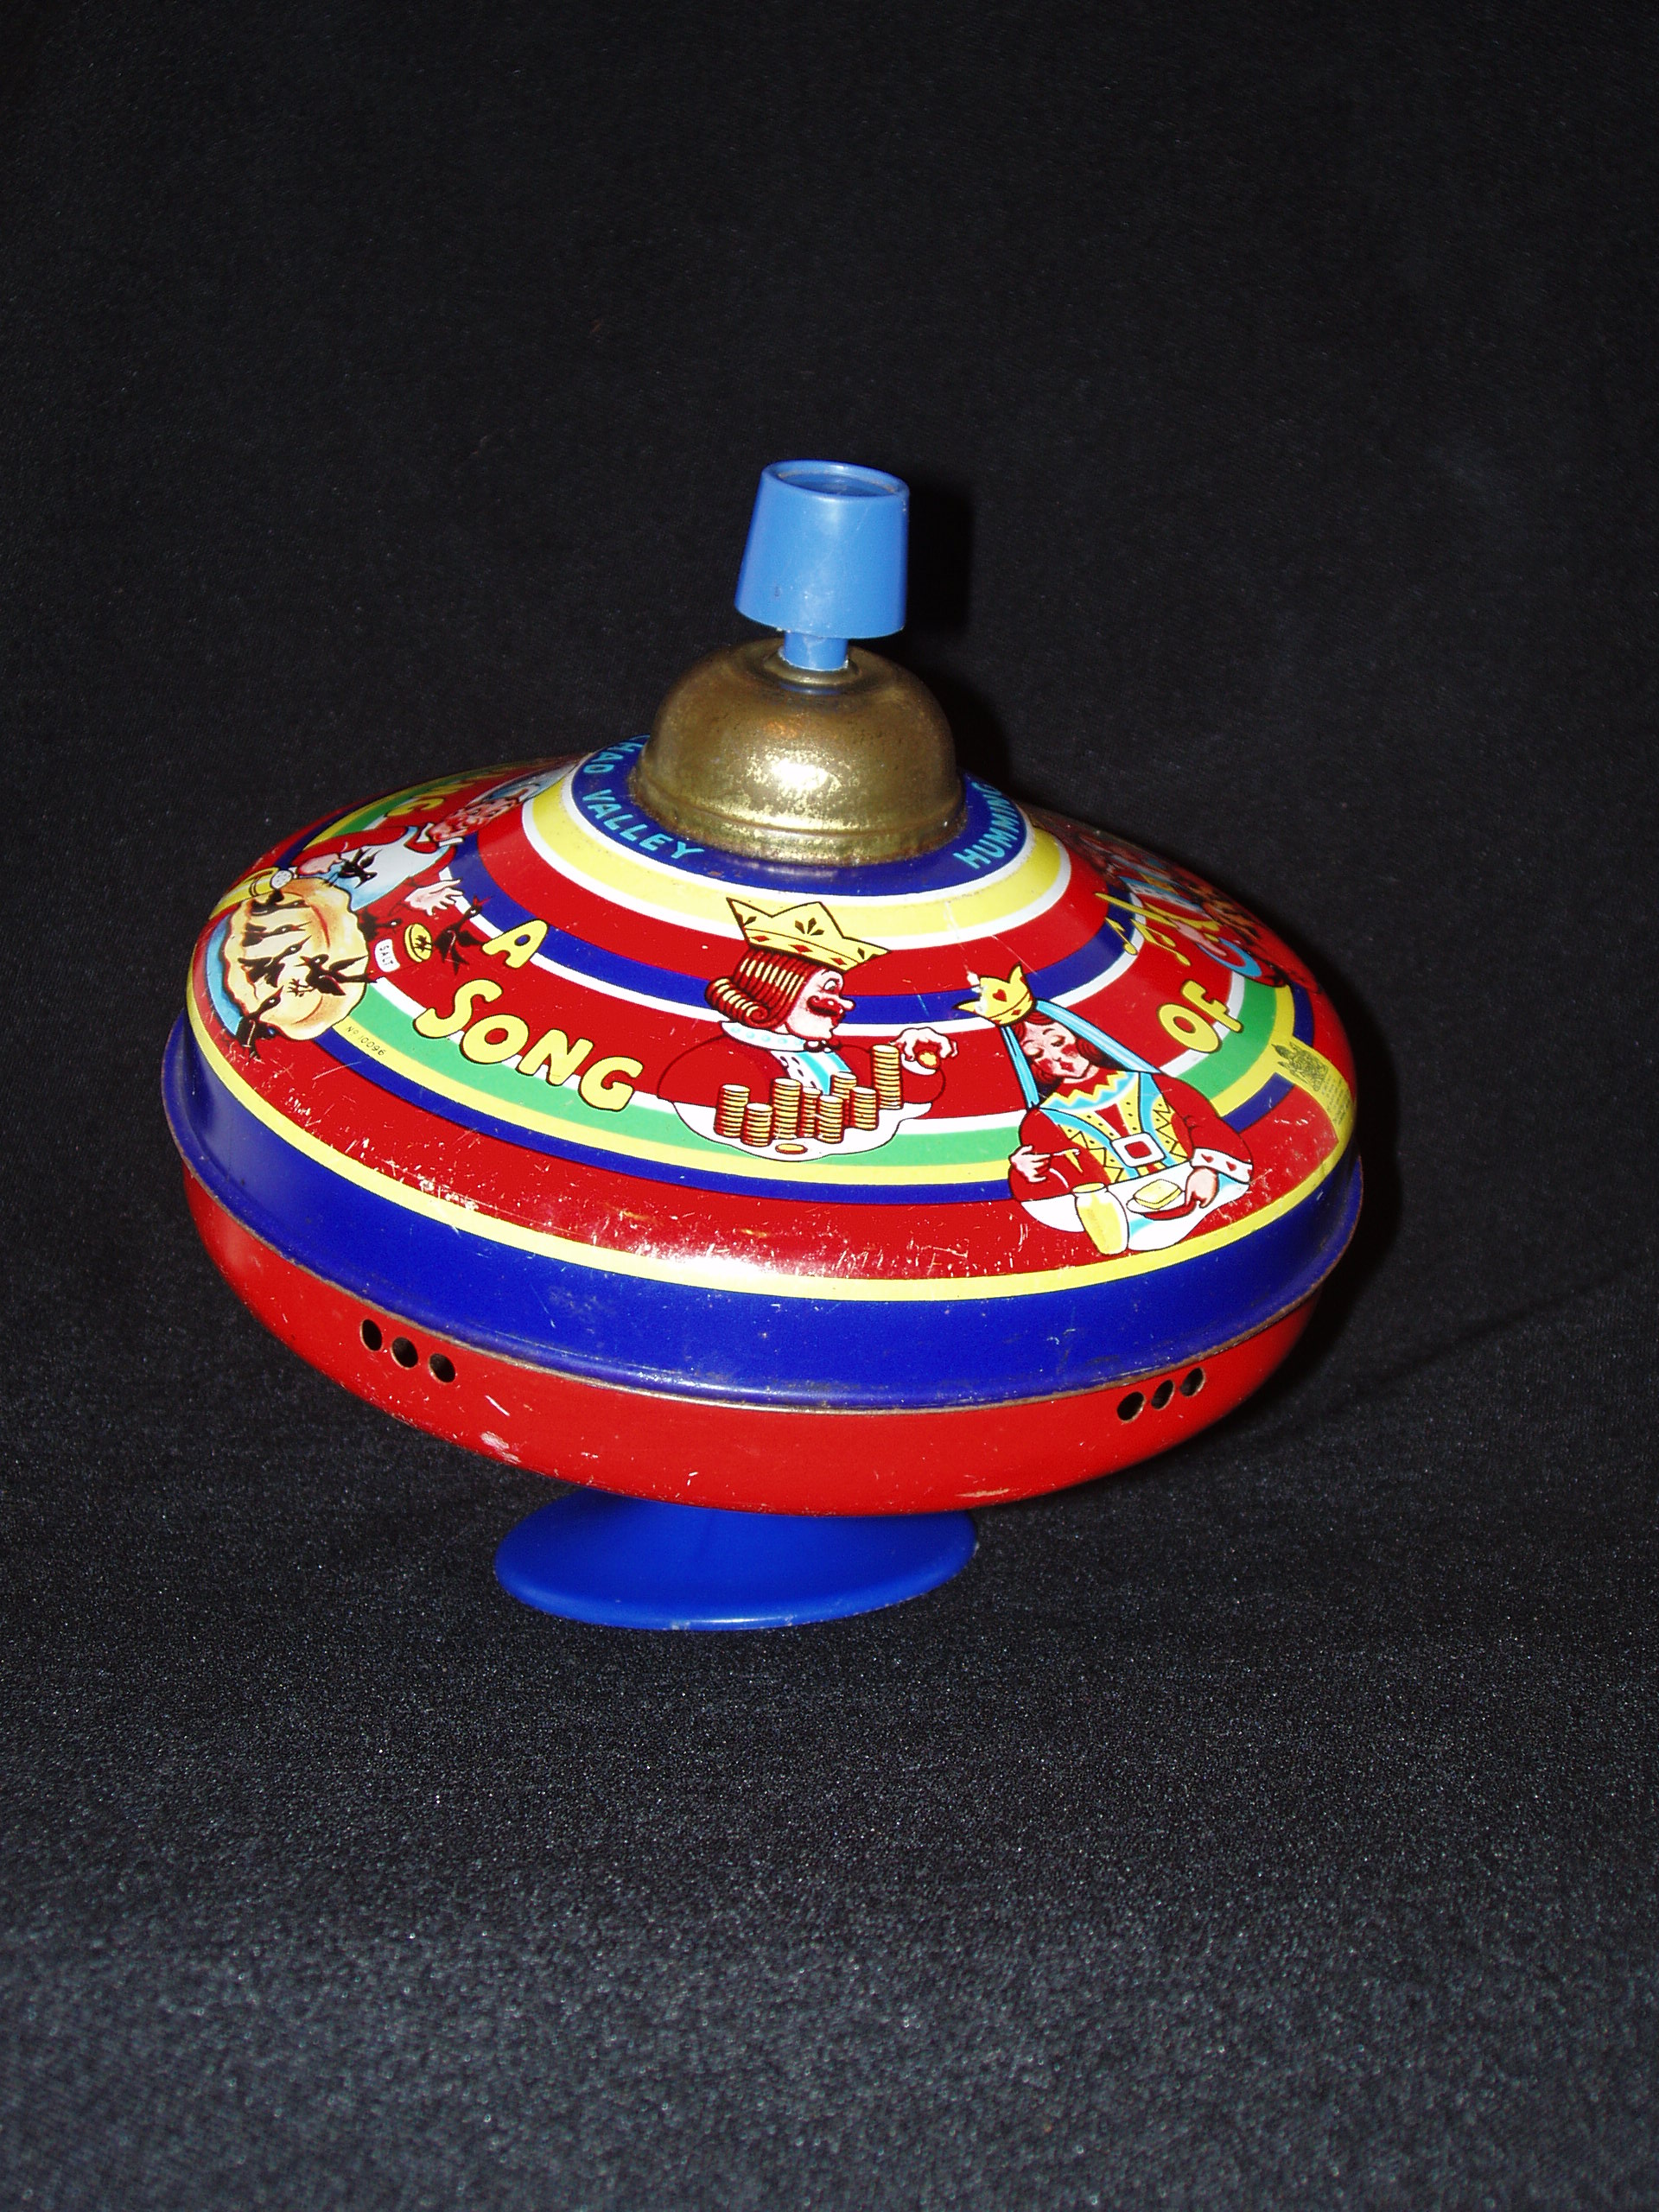 Toy Spinning Top : Toys spinning top nen gallery